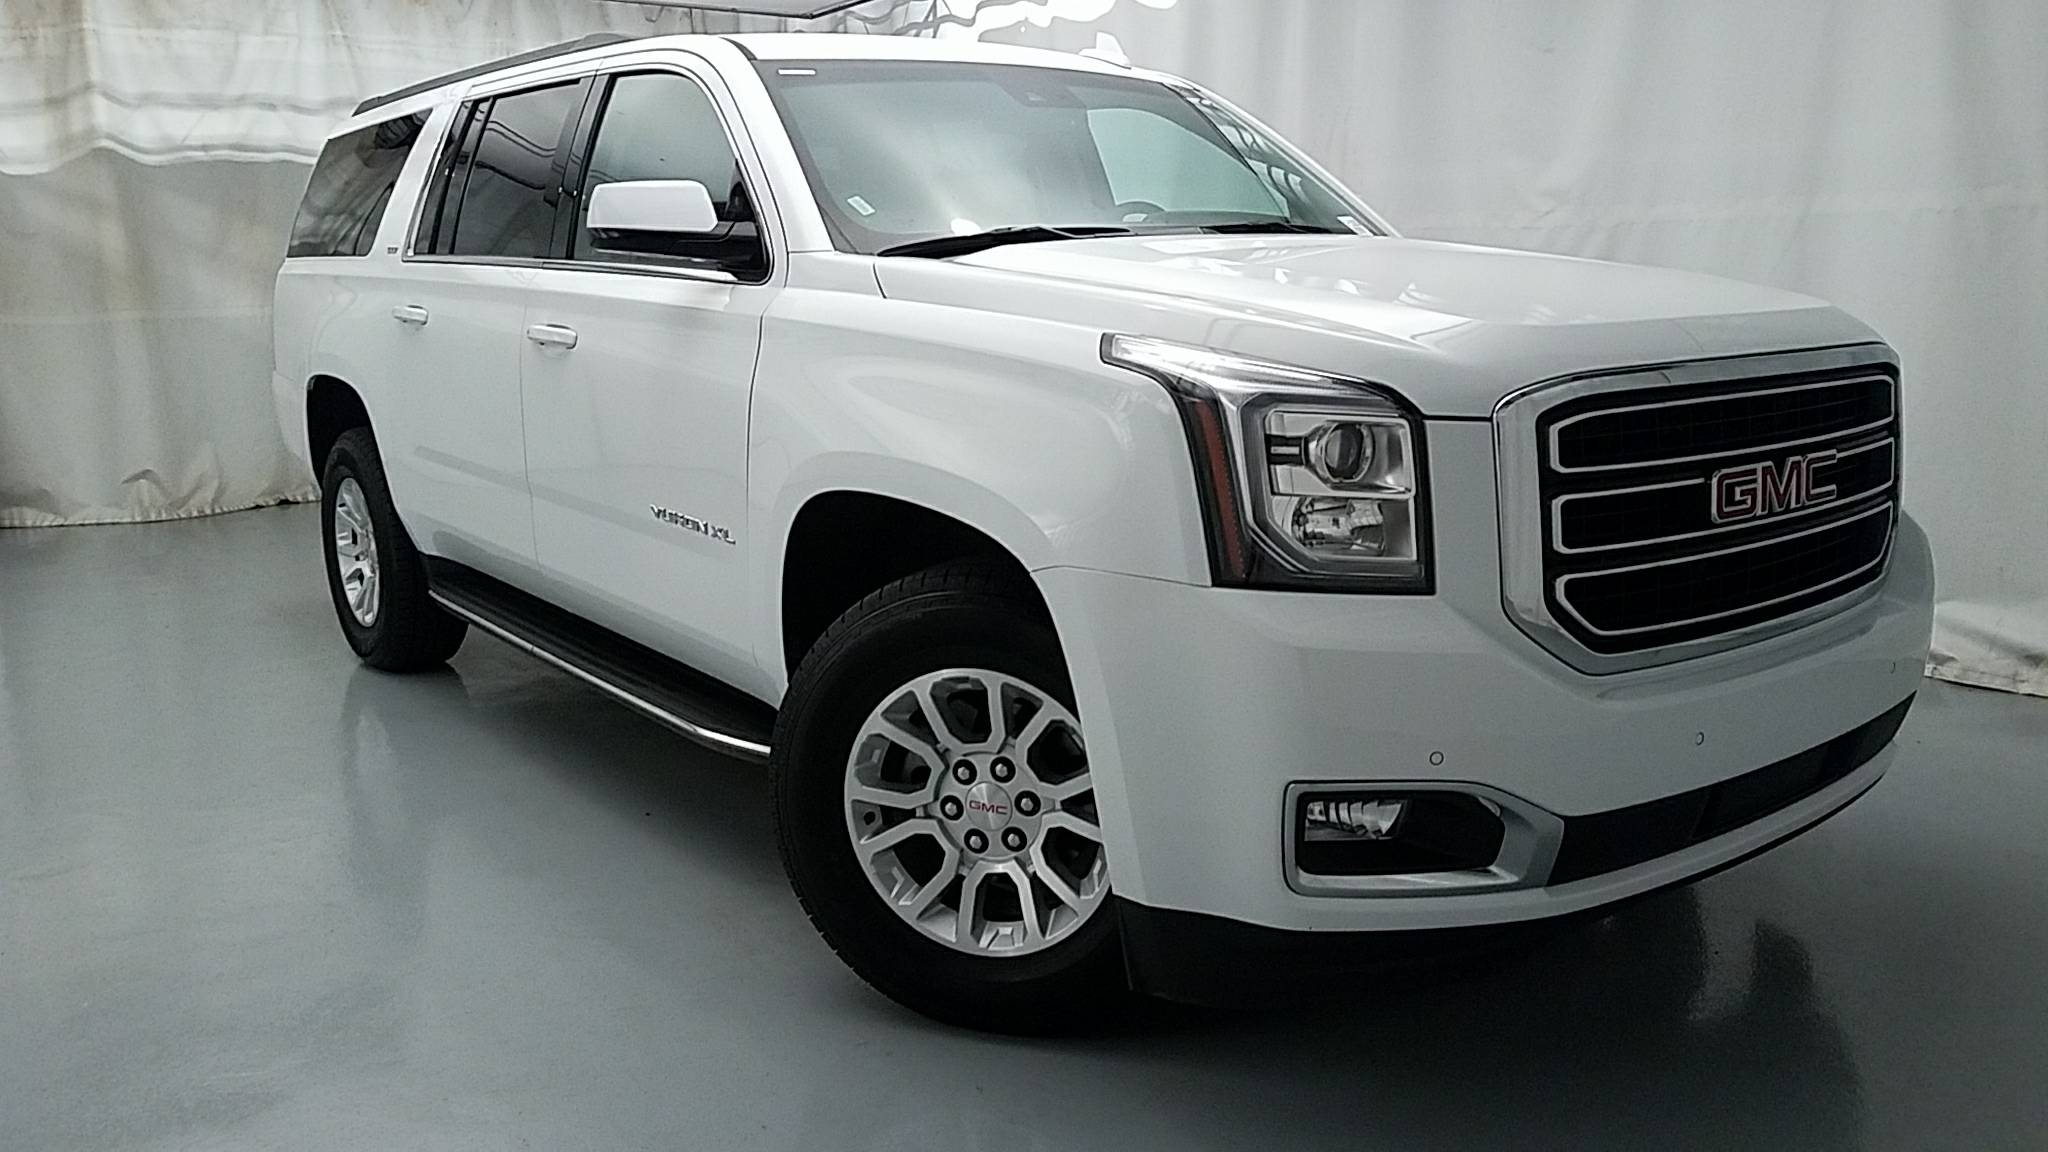 photo wi for used gmc yukon sale in bloomer vehicle vehiclesearchresults xl vehicles